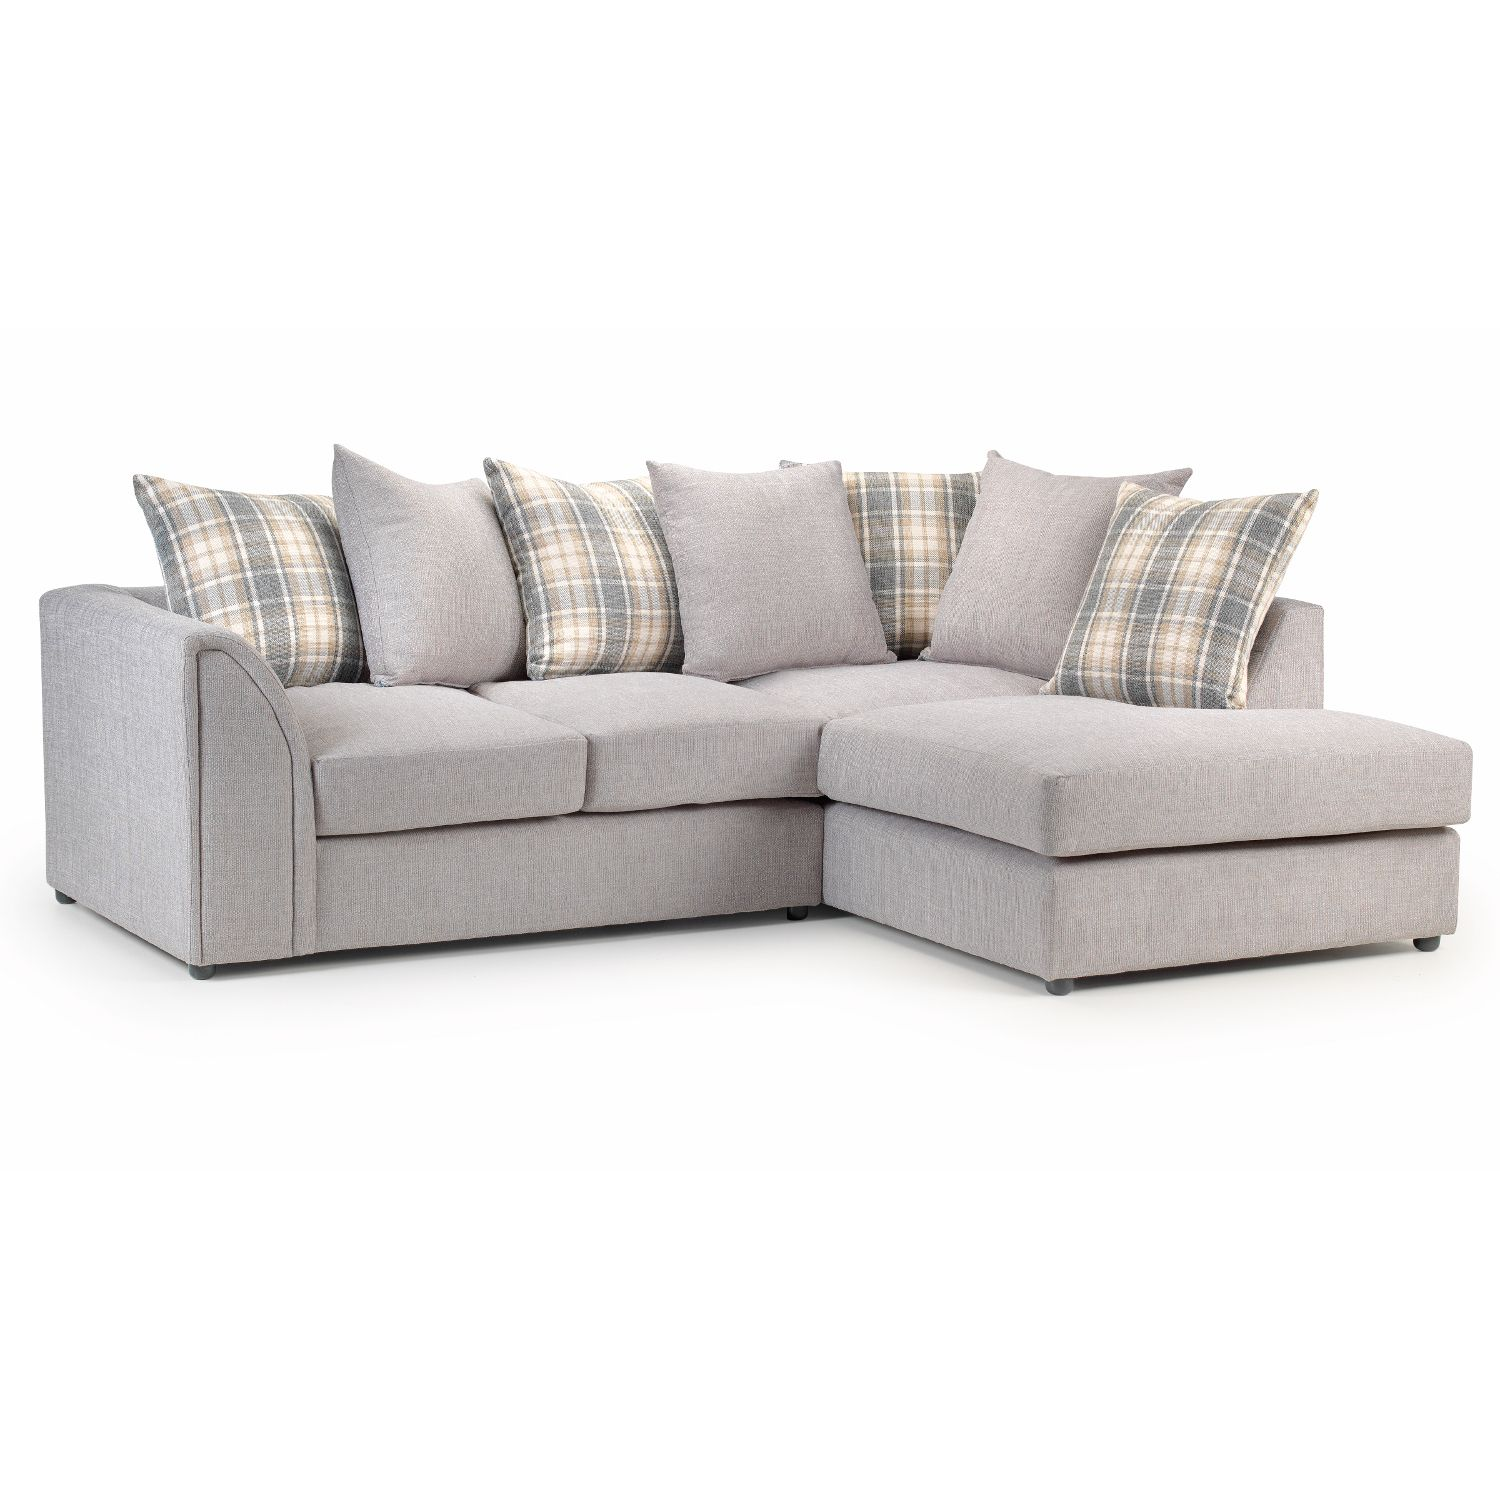 Nevada Fabric Corner Sofa – Next Day Delivery Nevada Fabric Corner